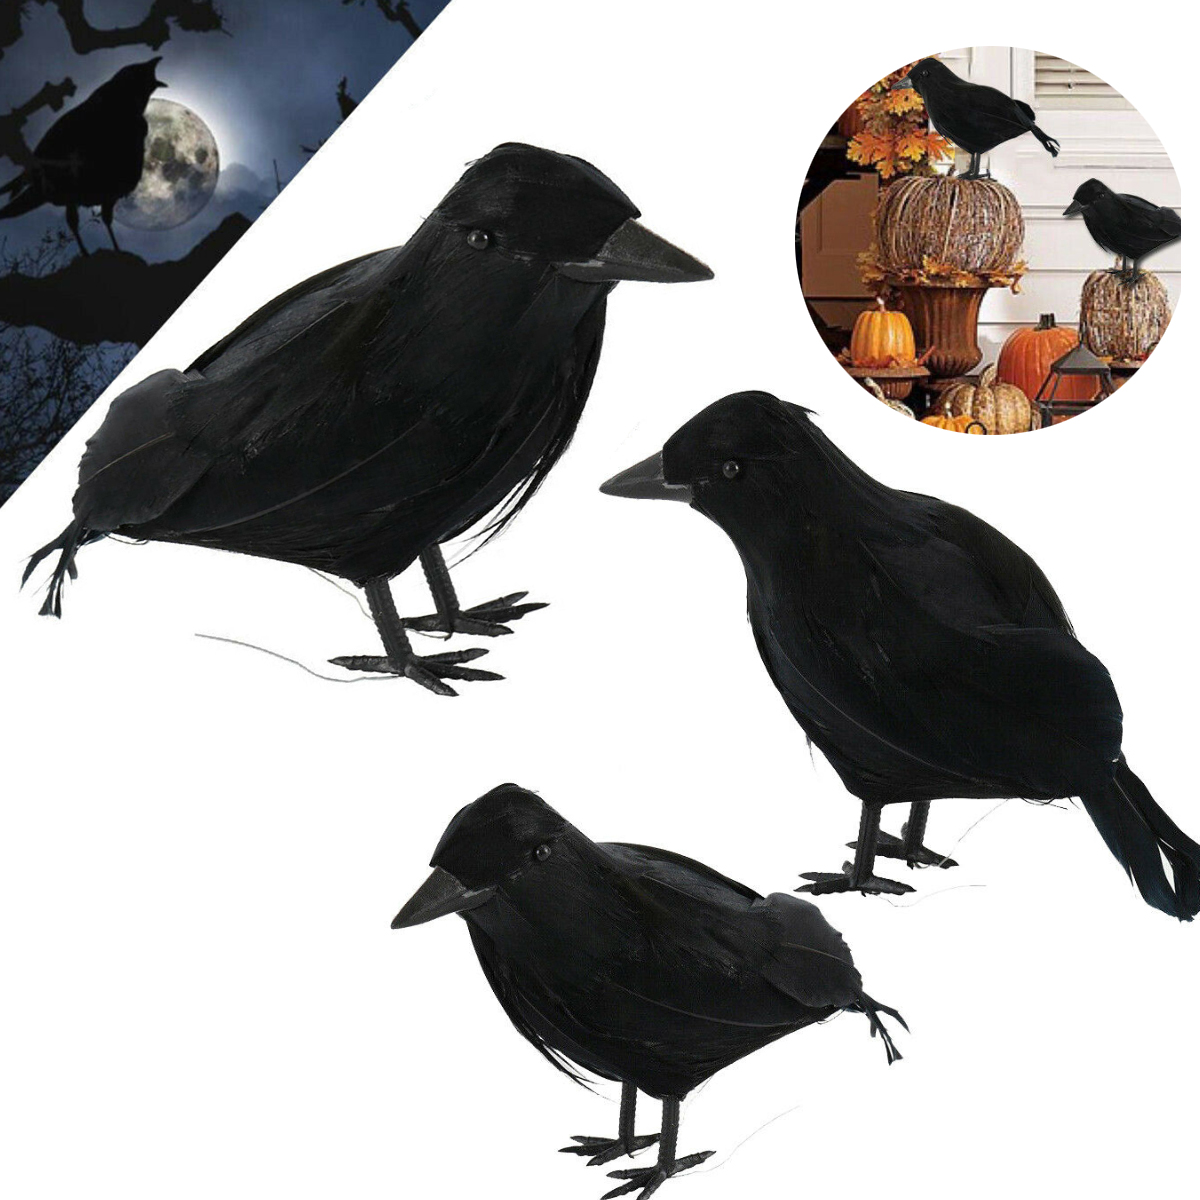 2019 NEW Halloween Display Event Black Plastic Crow Hunting Decoy Garden Yard Bird Repeller Decoration Supplies Gift